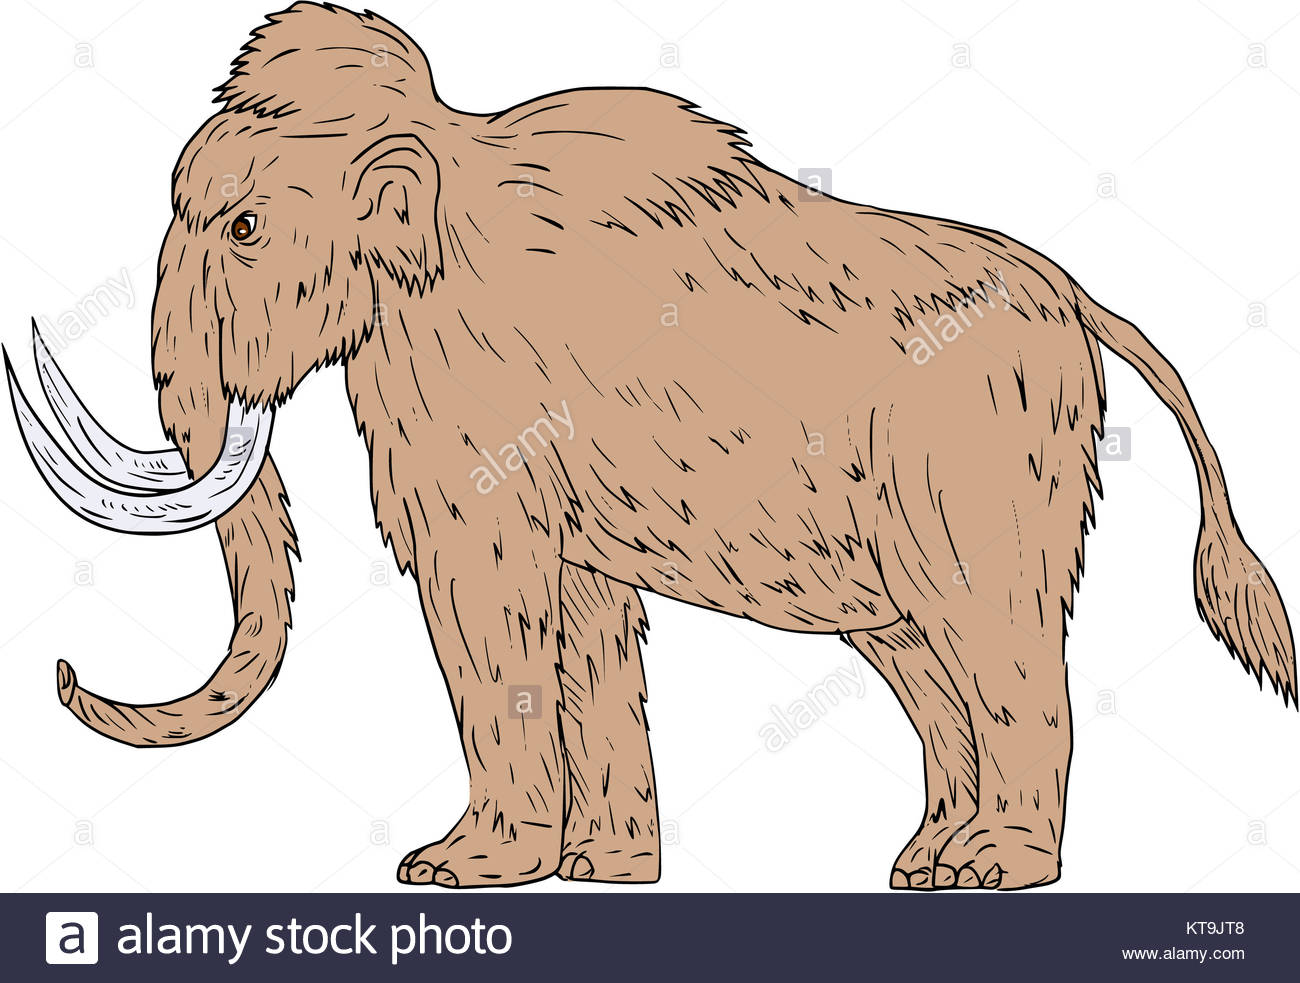 1300x983 Woolly Mammoth Side Drawing Stock Photo, Royalty Free Image